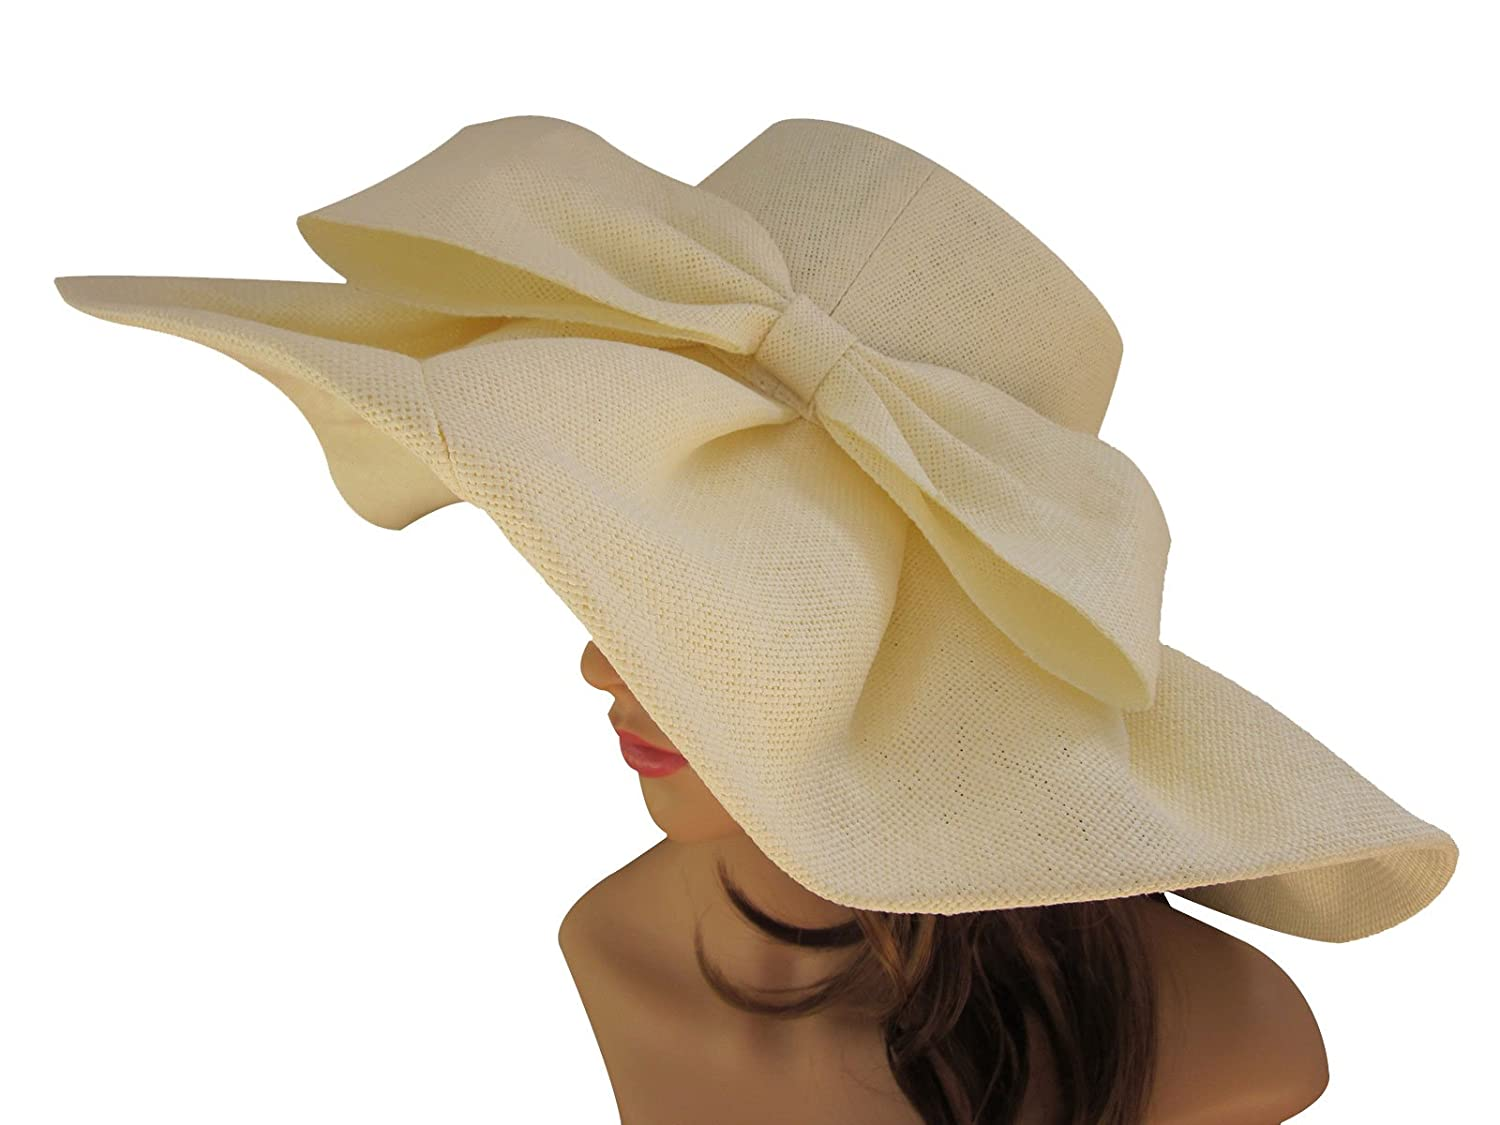 Edwardian Hats, Titanic Hats, Tea Party Hats Linen Summer Womens Kentucky Derby Wide Brim Sun Hat Wedding Church Sea Beach A047 $17.99 AT vintagedancer.com